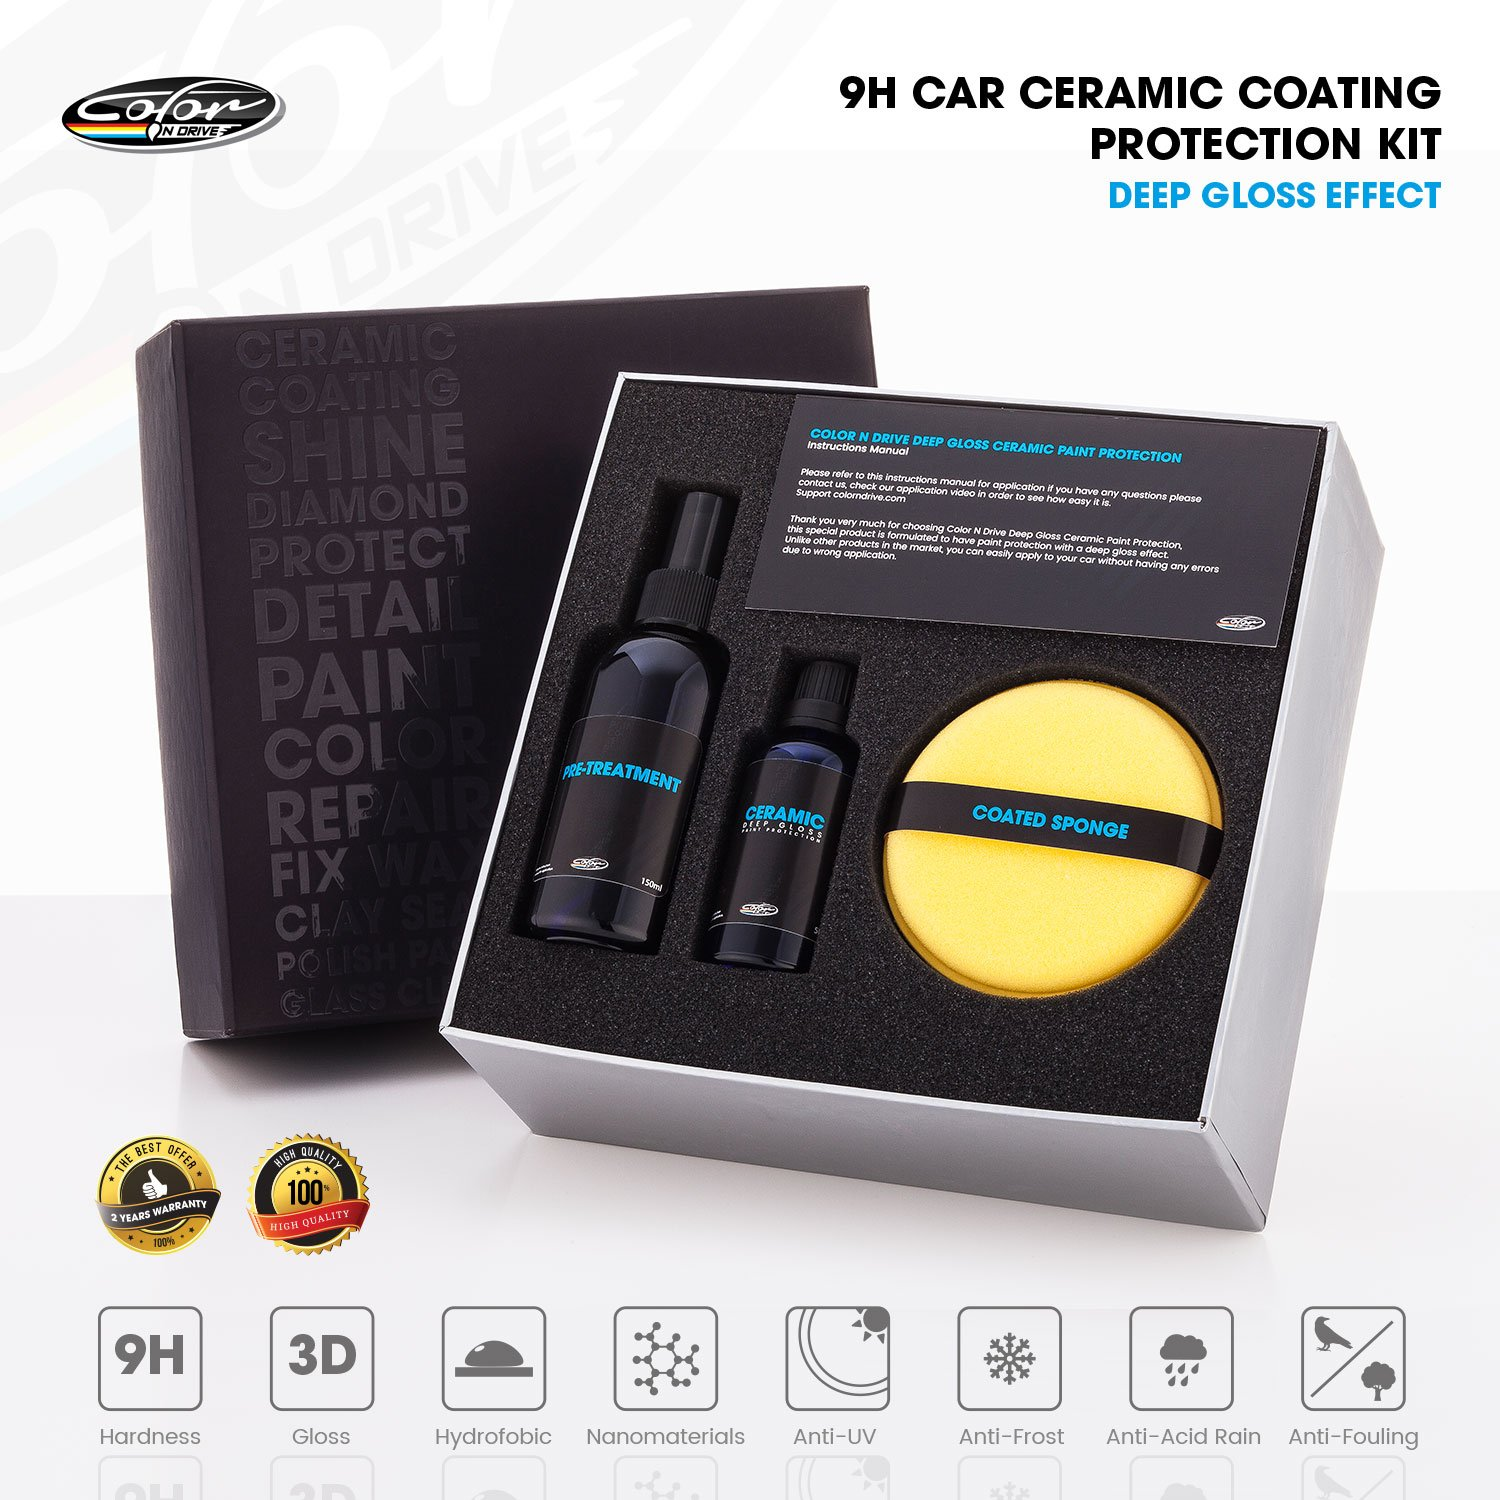 The Best Ceramic Coating Agents For Your Car: Reviews & Buying Guide 2